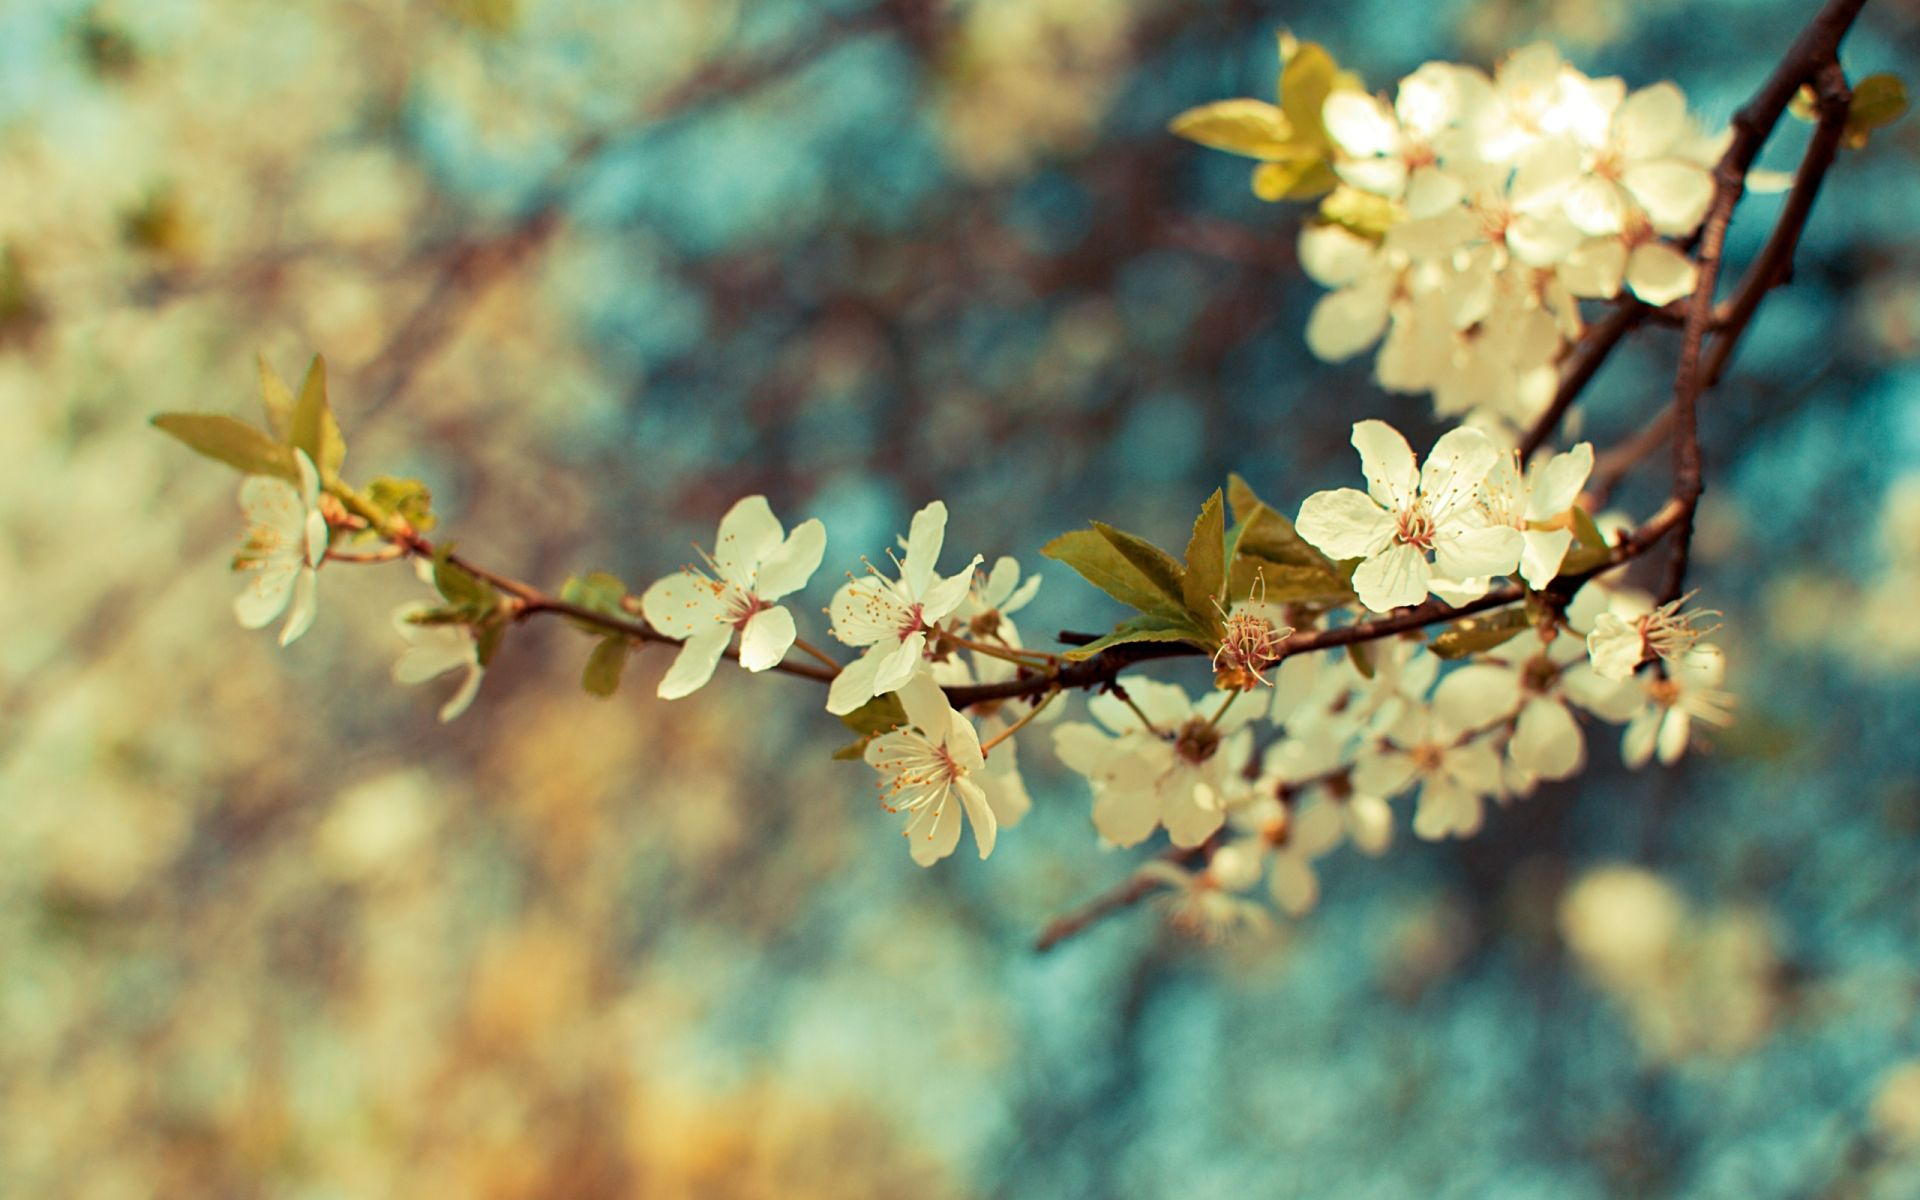 sakura spring flower wallpapers of cherry blossom